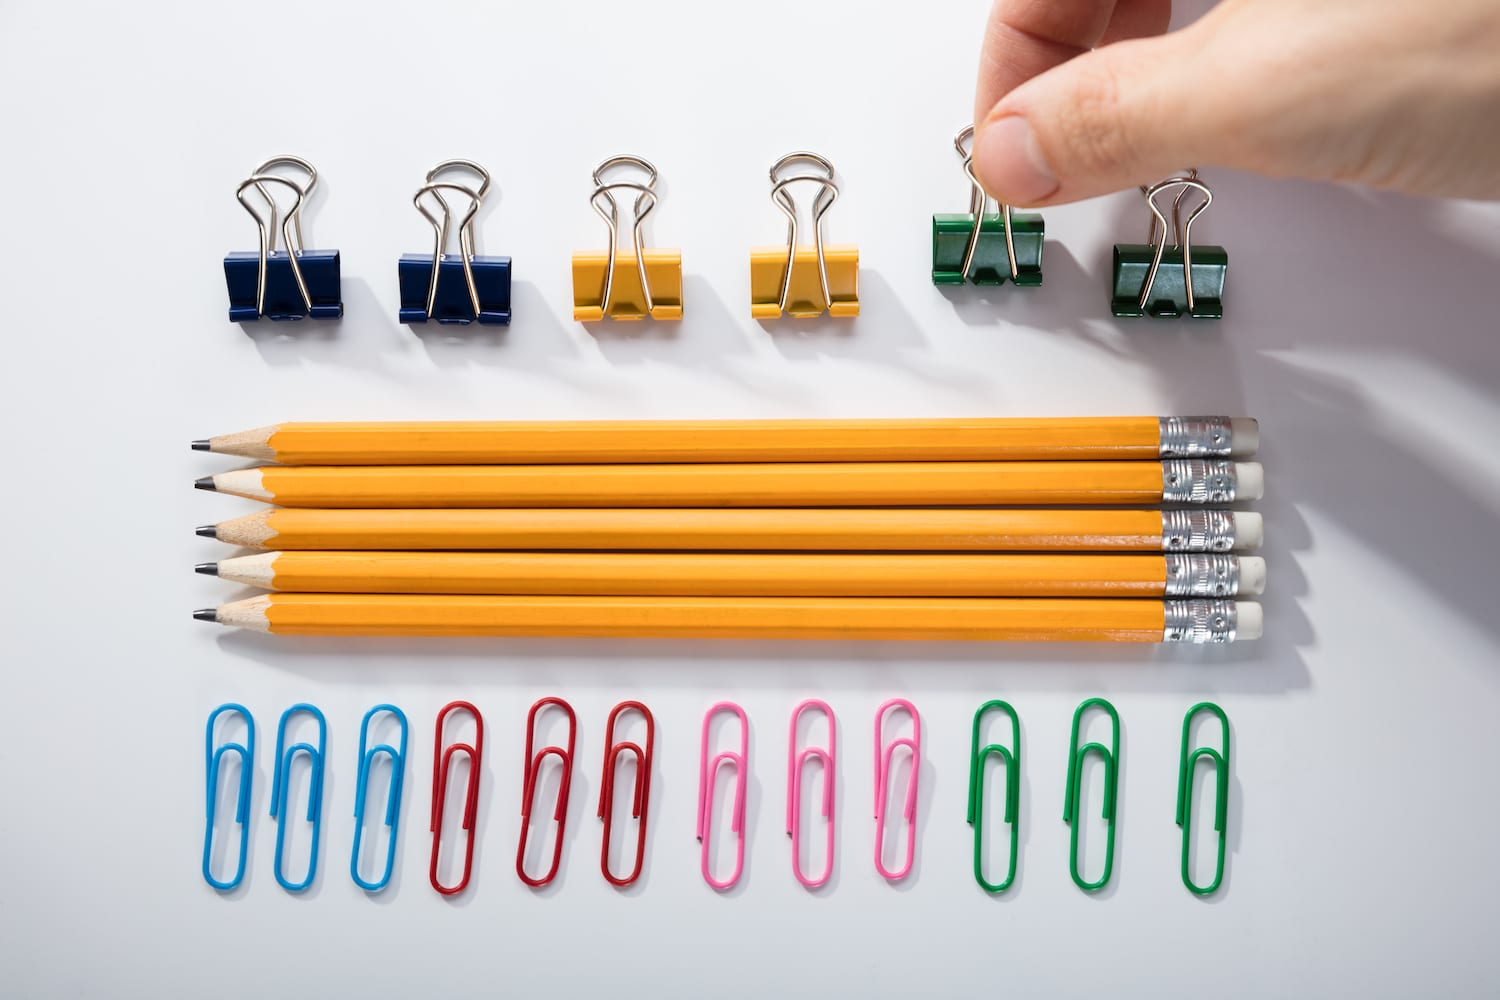 Lining up paper clips